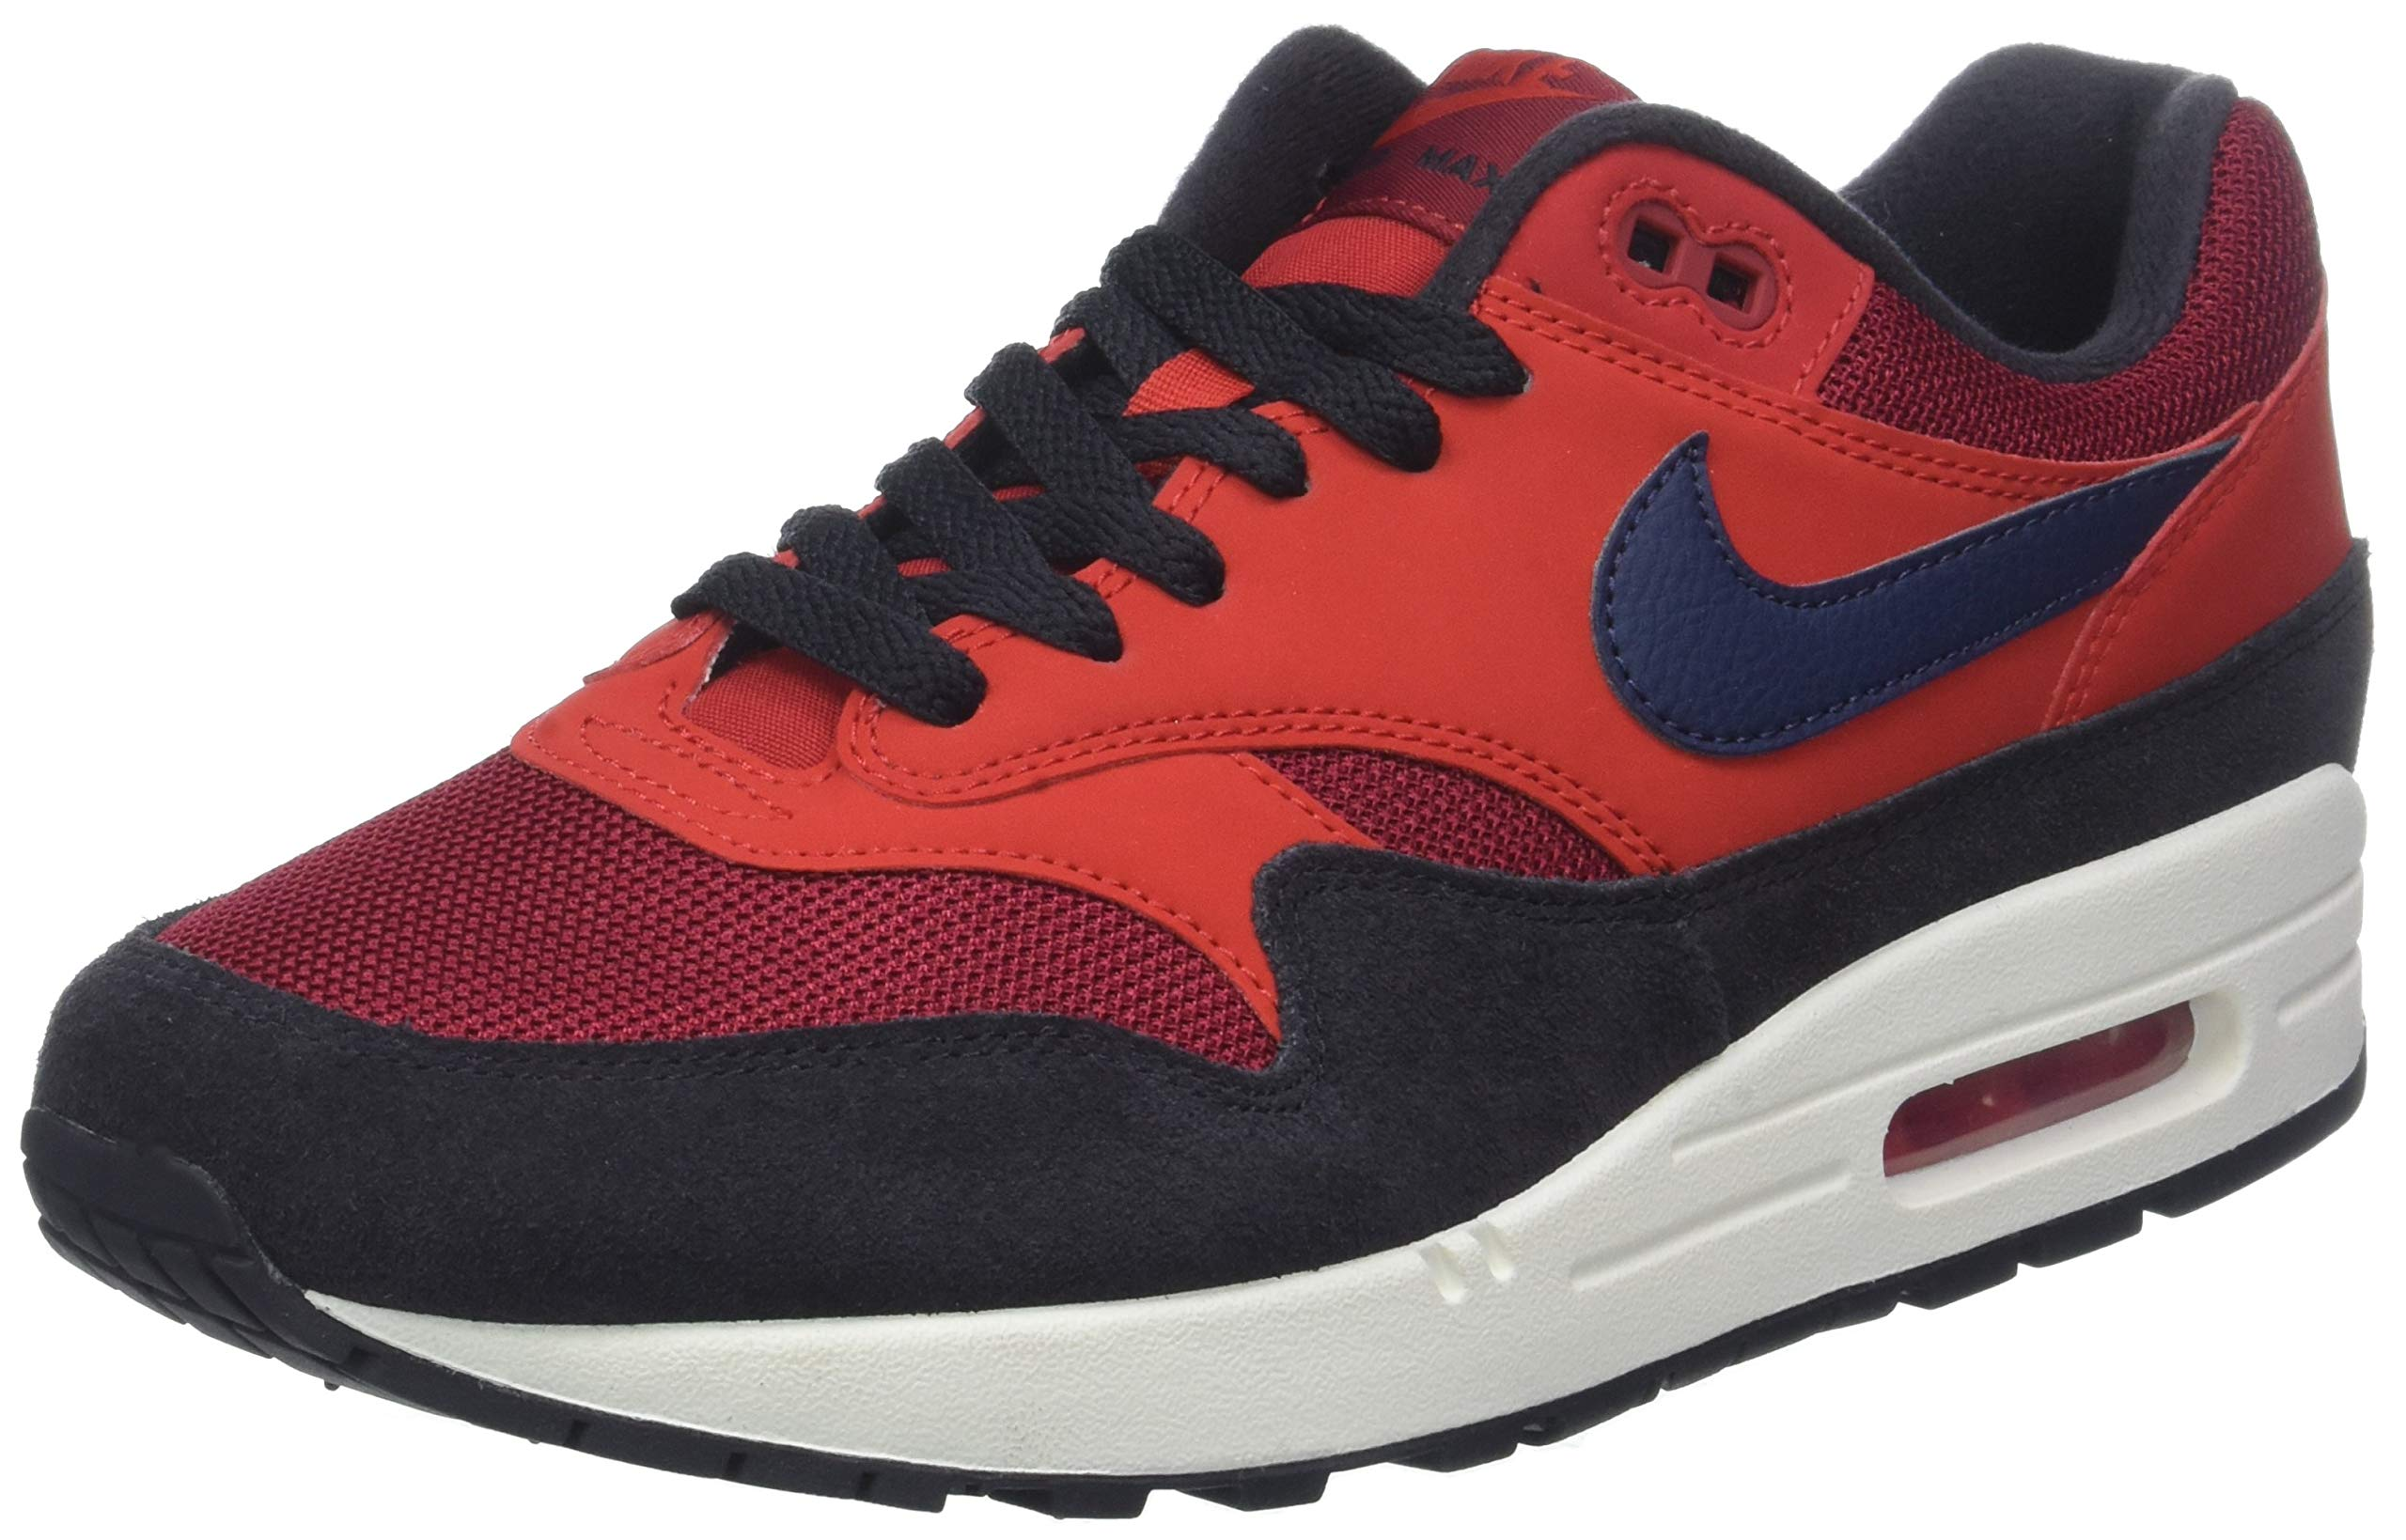 outlet store 4ba33 a9809 Galleon - Nike Air Max 1 Mens Trainers AH8145 Sneakers Shoes (UK 8 US 9 EU  42.5, Red Crush Midnight Navy 600)